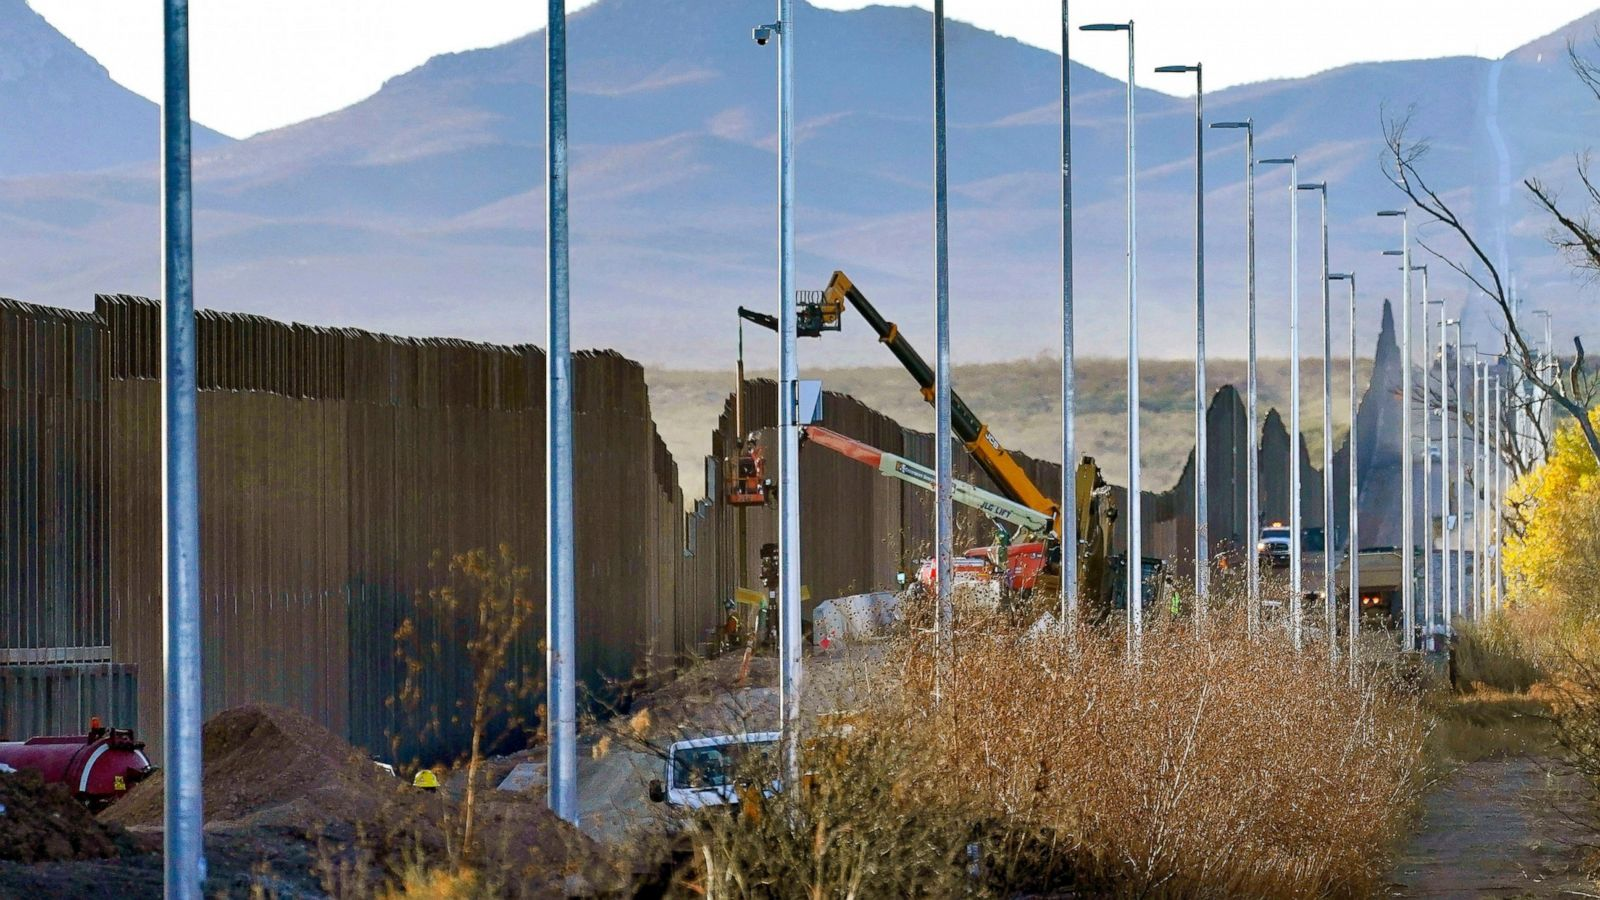 Damage From Border Wall Blown Up Mountains Toppled Cactus Abc News